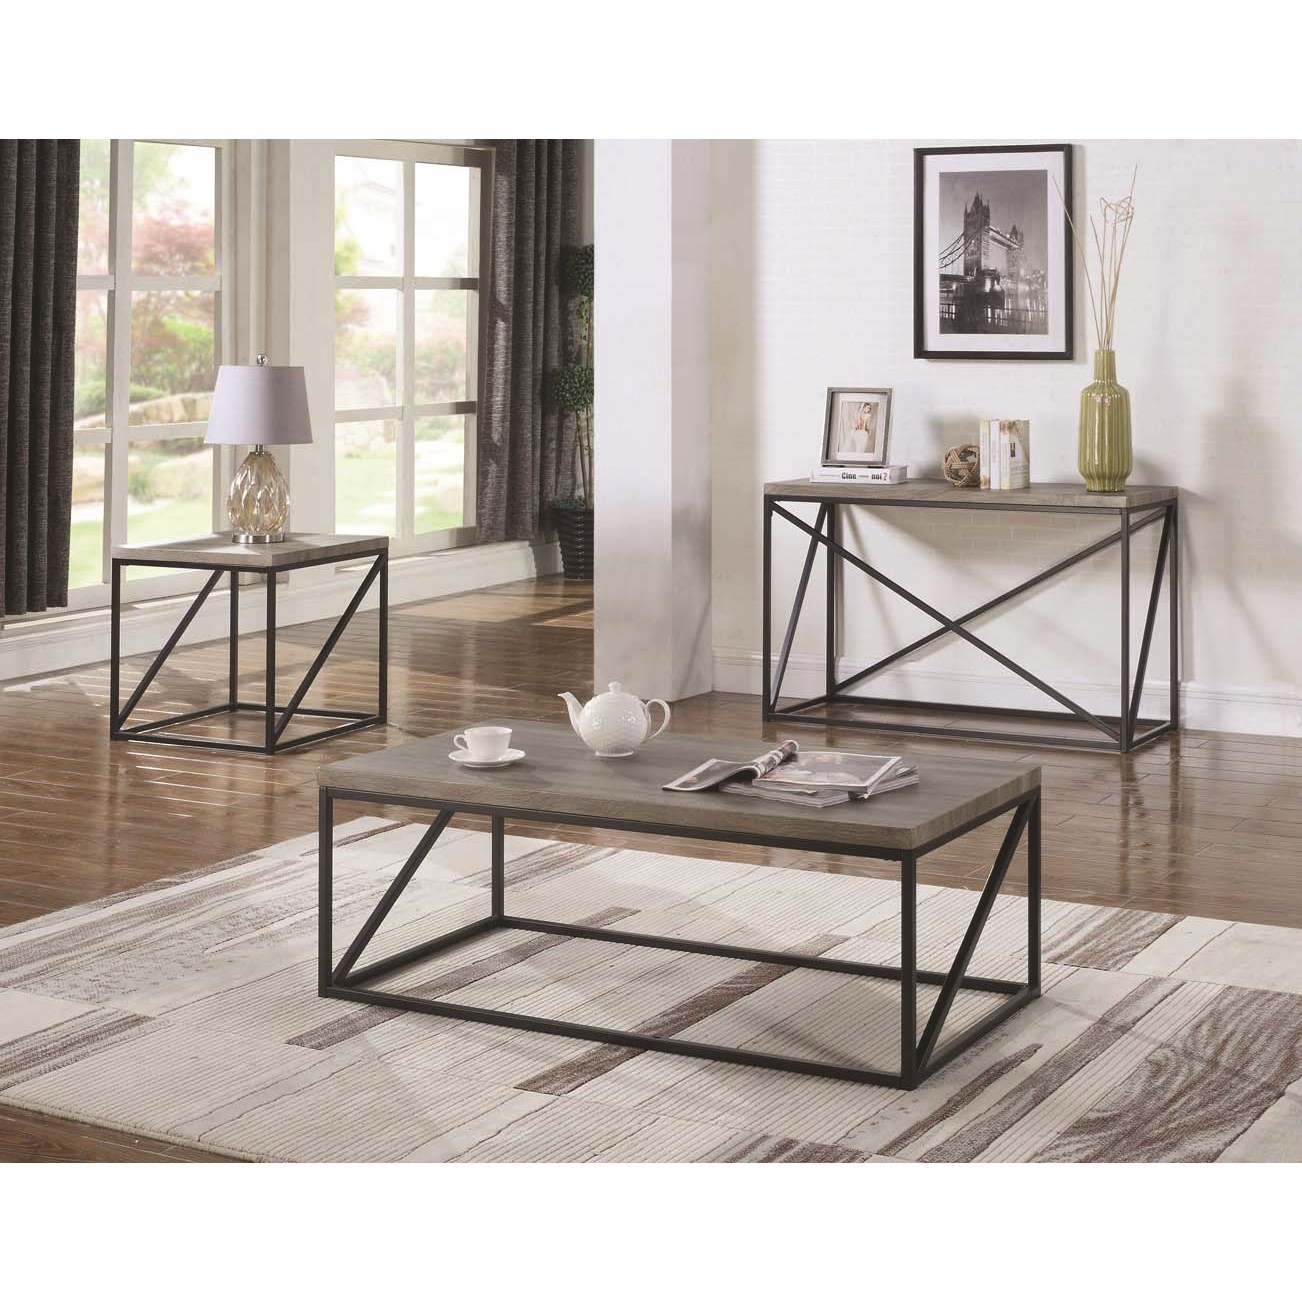 Coaster 70561 Industrial Coffee Table Value City